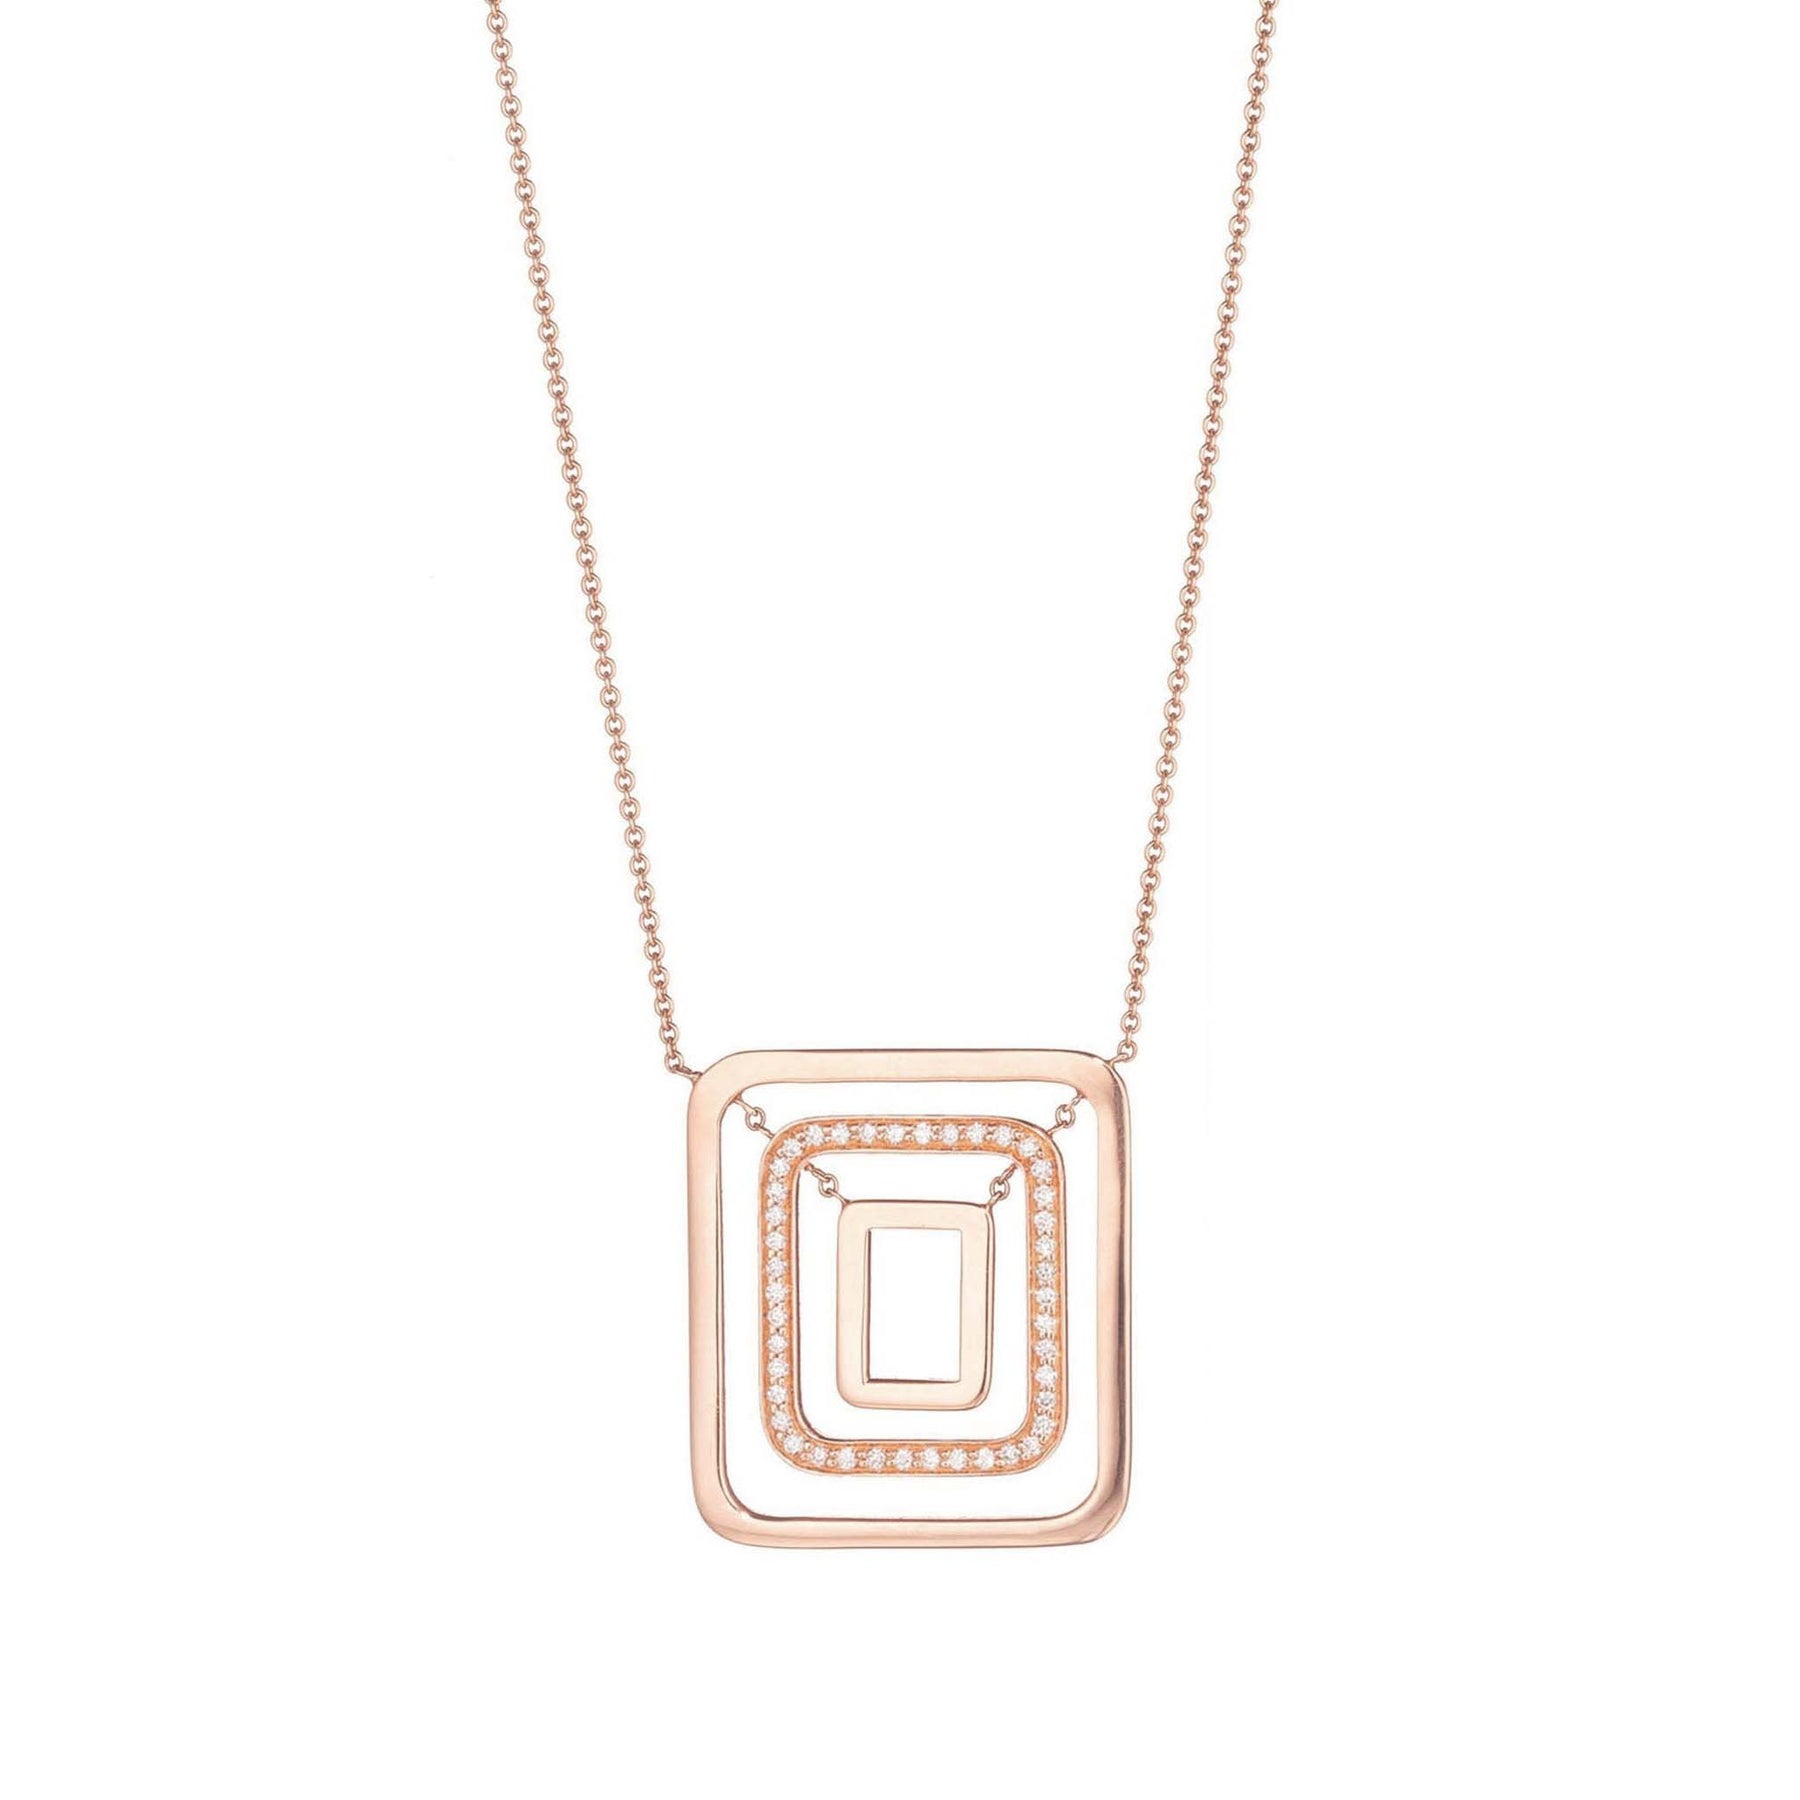 Mimi-So-Piece-Square-Swing-Diamond-Necklace_18k Rose Gold